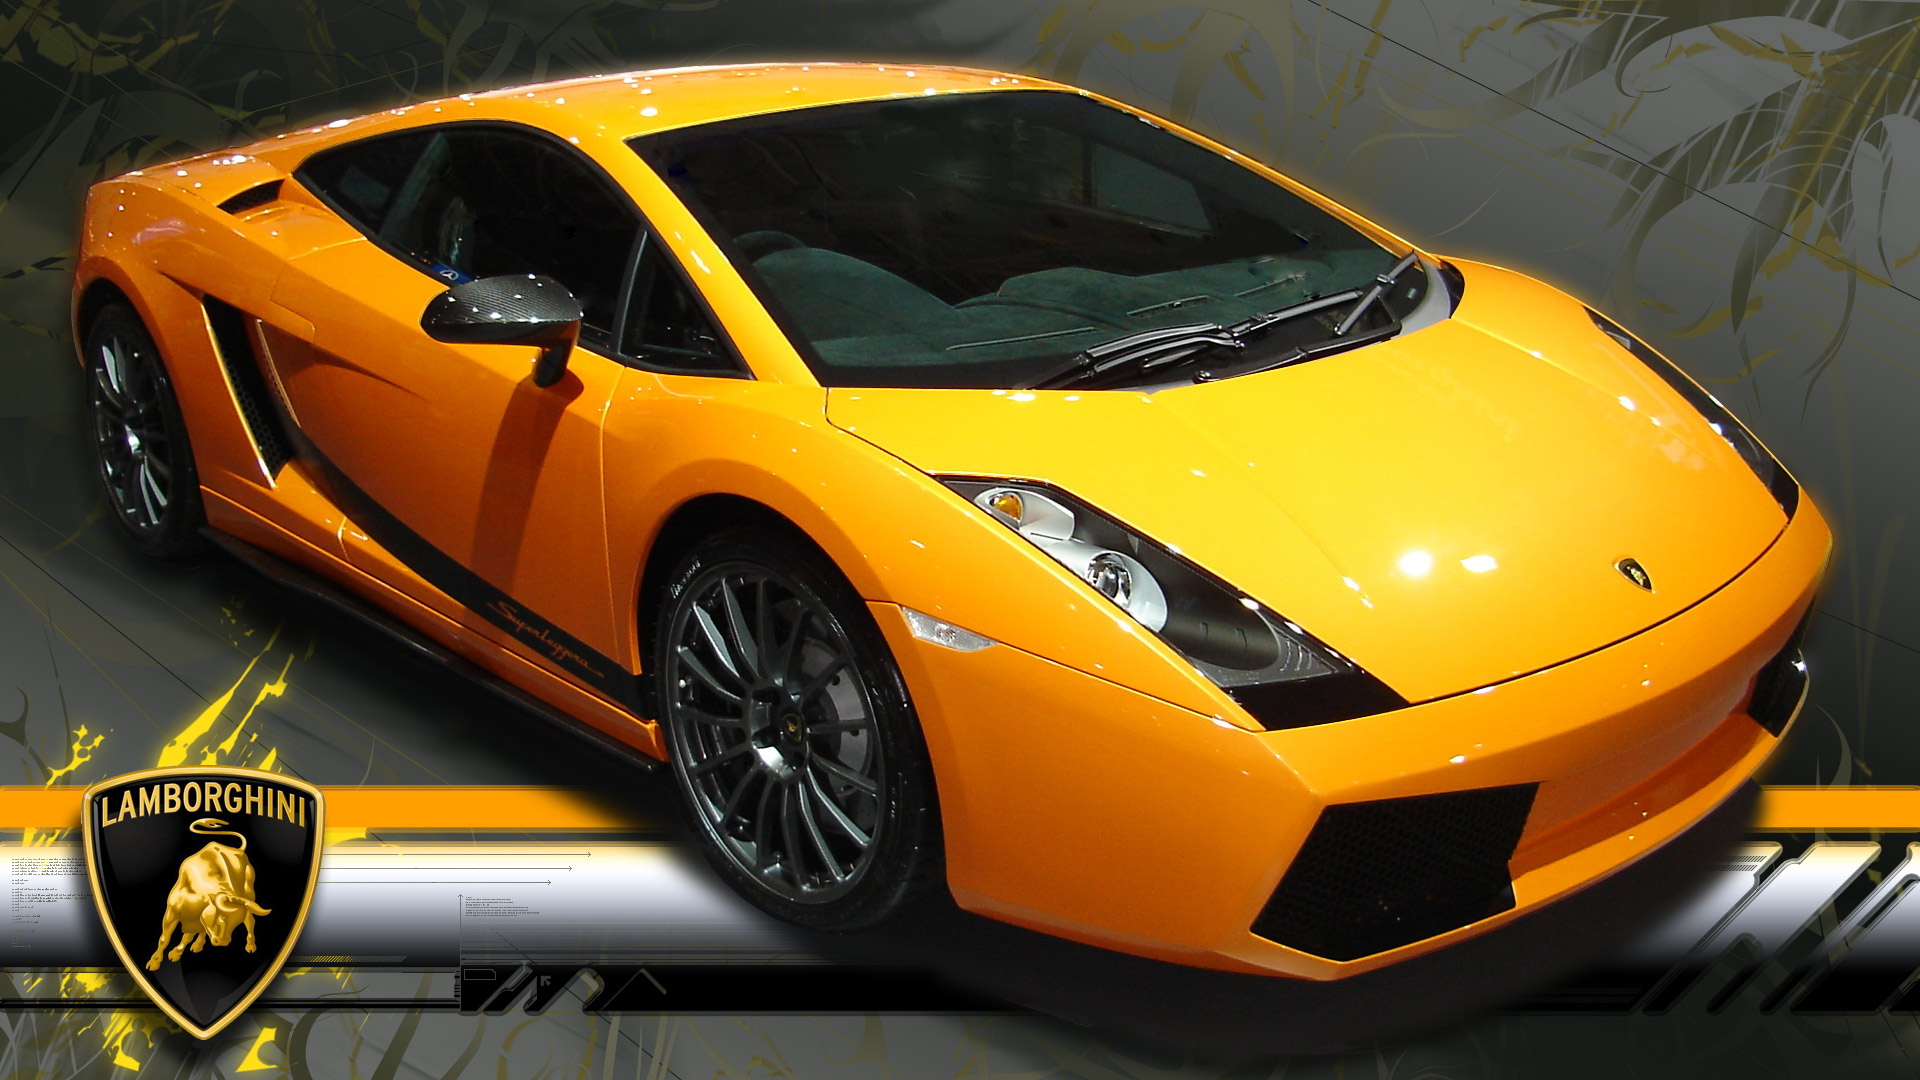 Download Lamborghini Wallpapers In HD For Desktop And Mobile Here